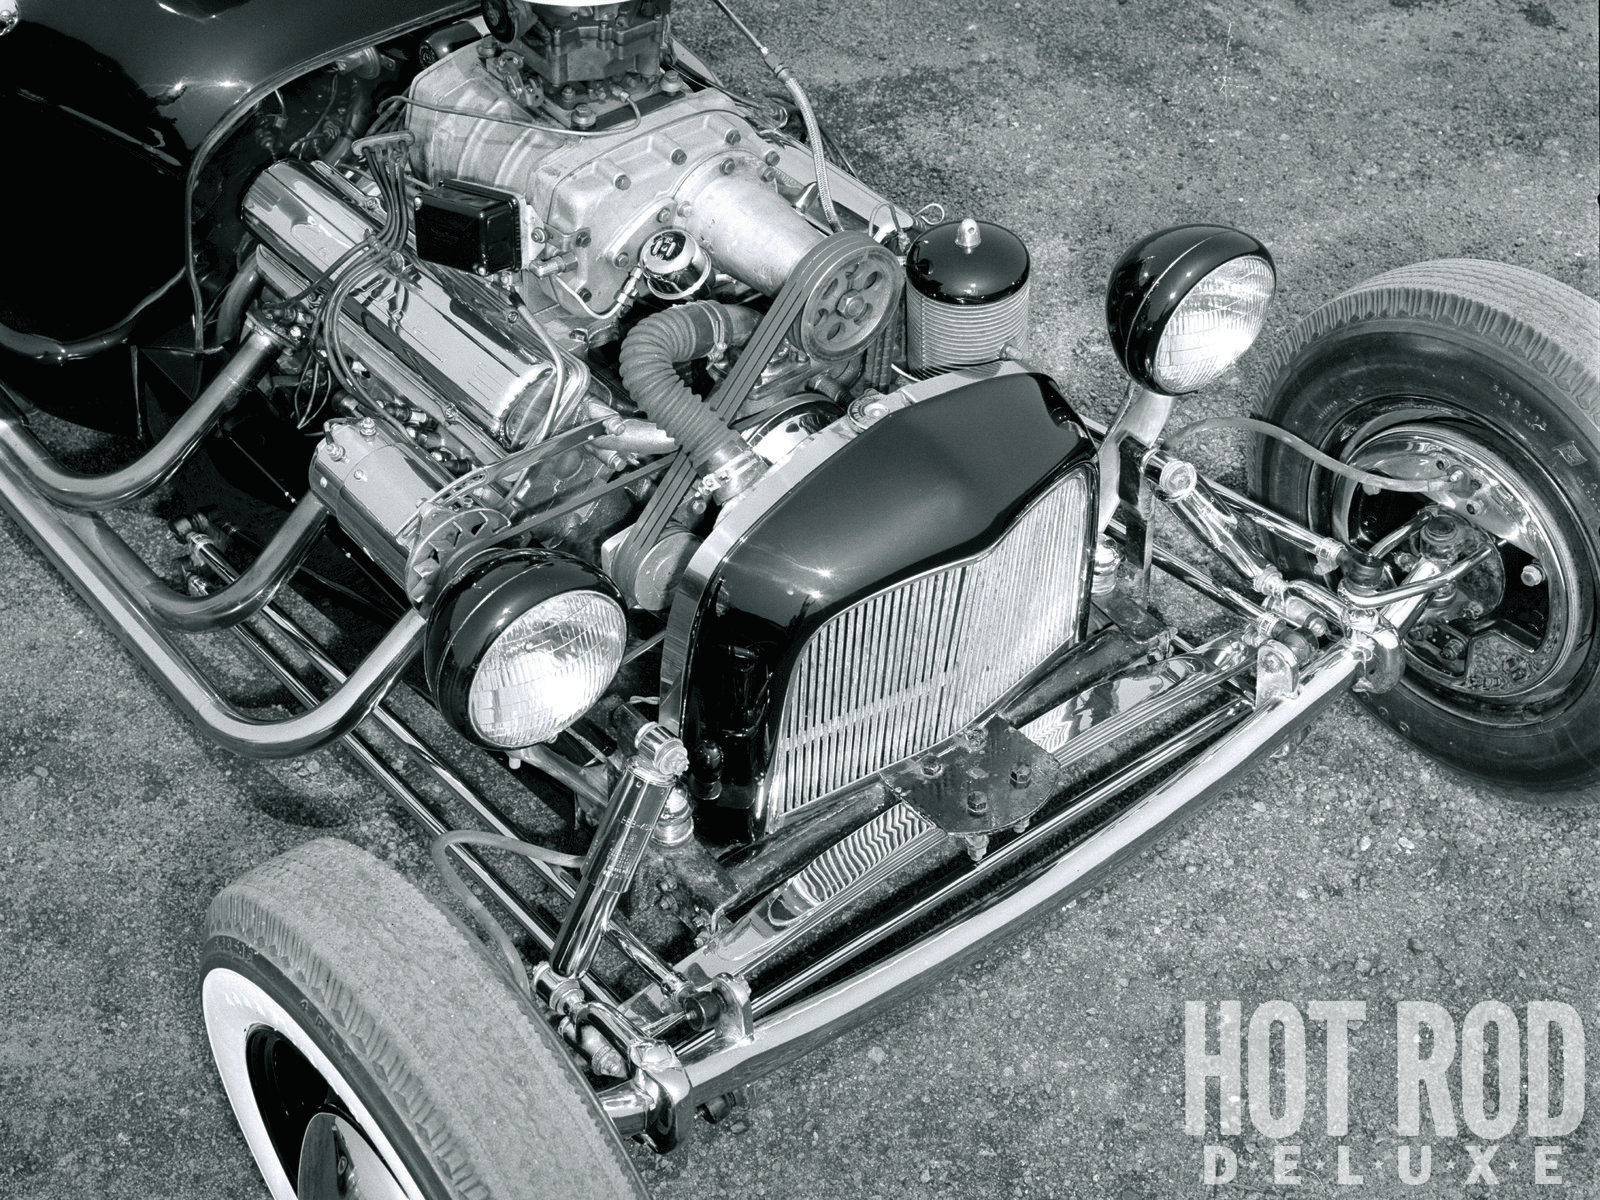 Top-mounted superchargers were still relatively rare at dragstrips, so imagine the stir this exposed GMC 3-71 created on the street. To make room for a '52 Cadillac V8 and custom radiator, Norm stretched the front frame by reinstalling 5-inch lengths of the leftover rear rails and reversing a set of '40 Ford spring hangers on the '37 Ford axle. The steering box and shortened column came from a '38 Chevy. A late-model Ford donated its hydraulic brakes.